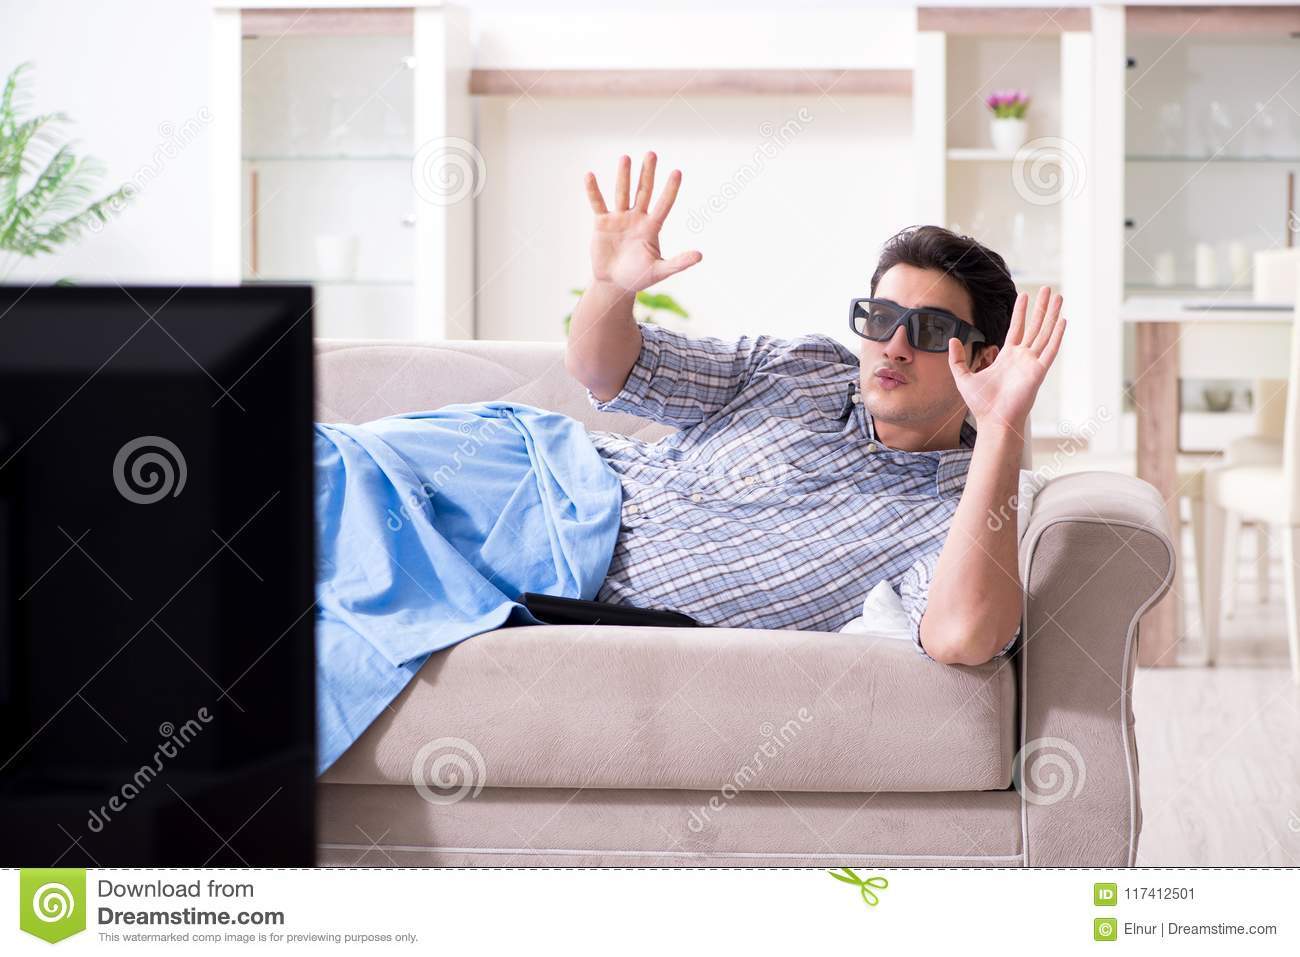 The man watching 3d tv at home